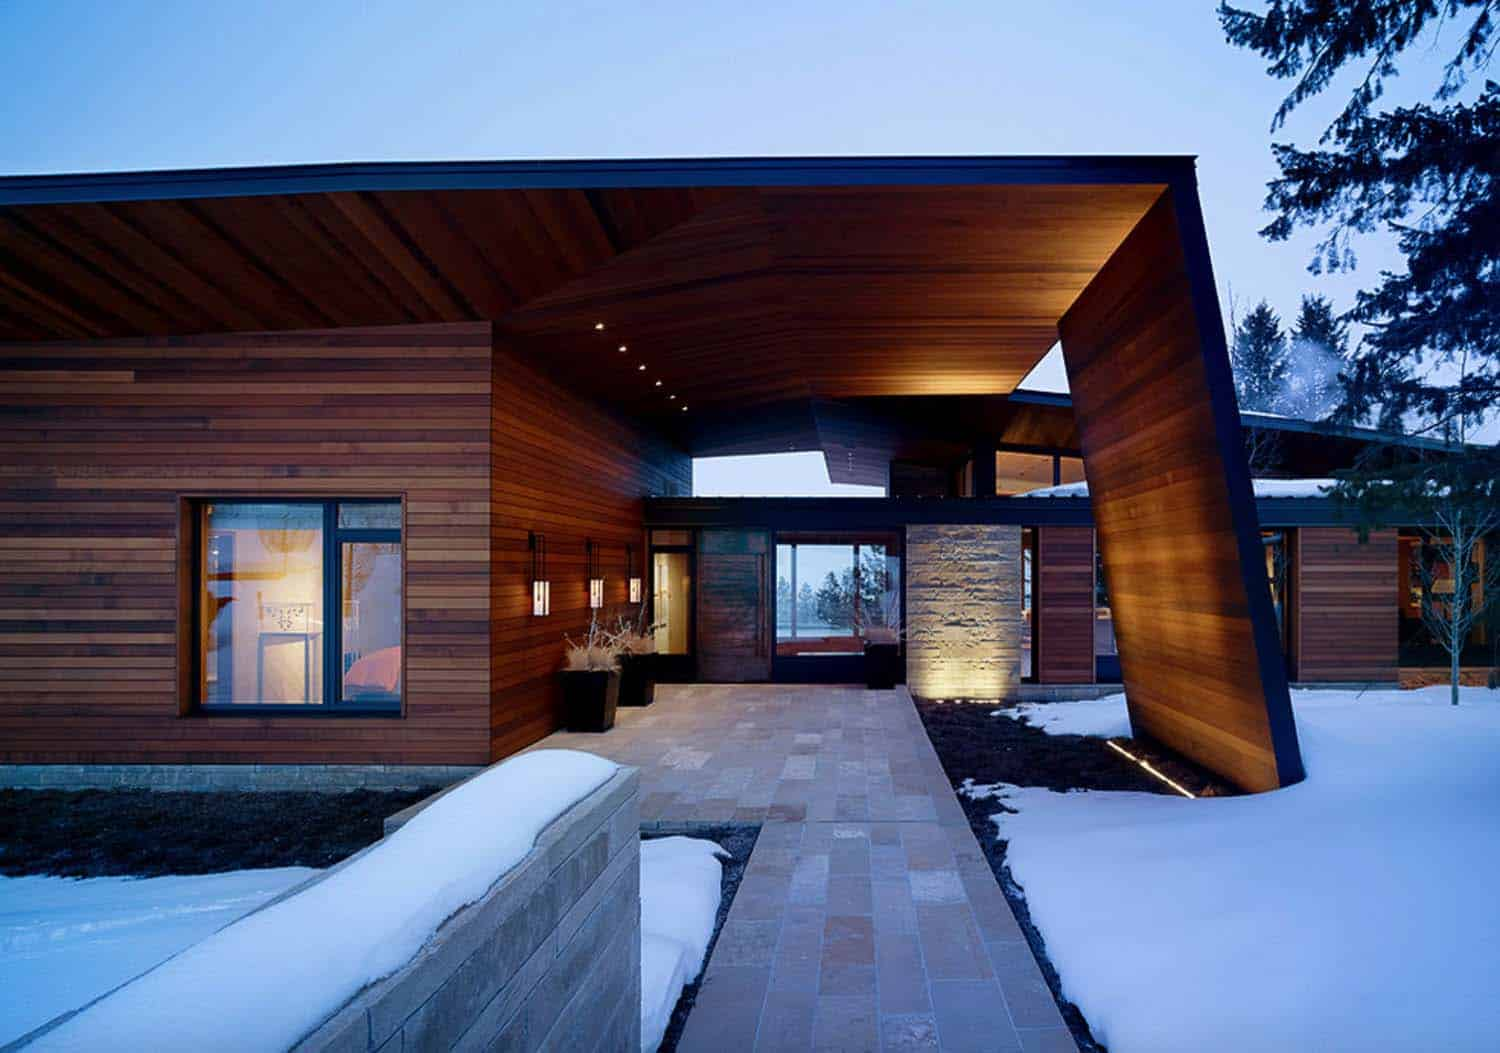 Contemporary Mountain Home-Carney Logan Burke Architects-01-1 Kindesign